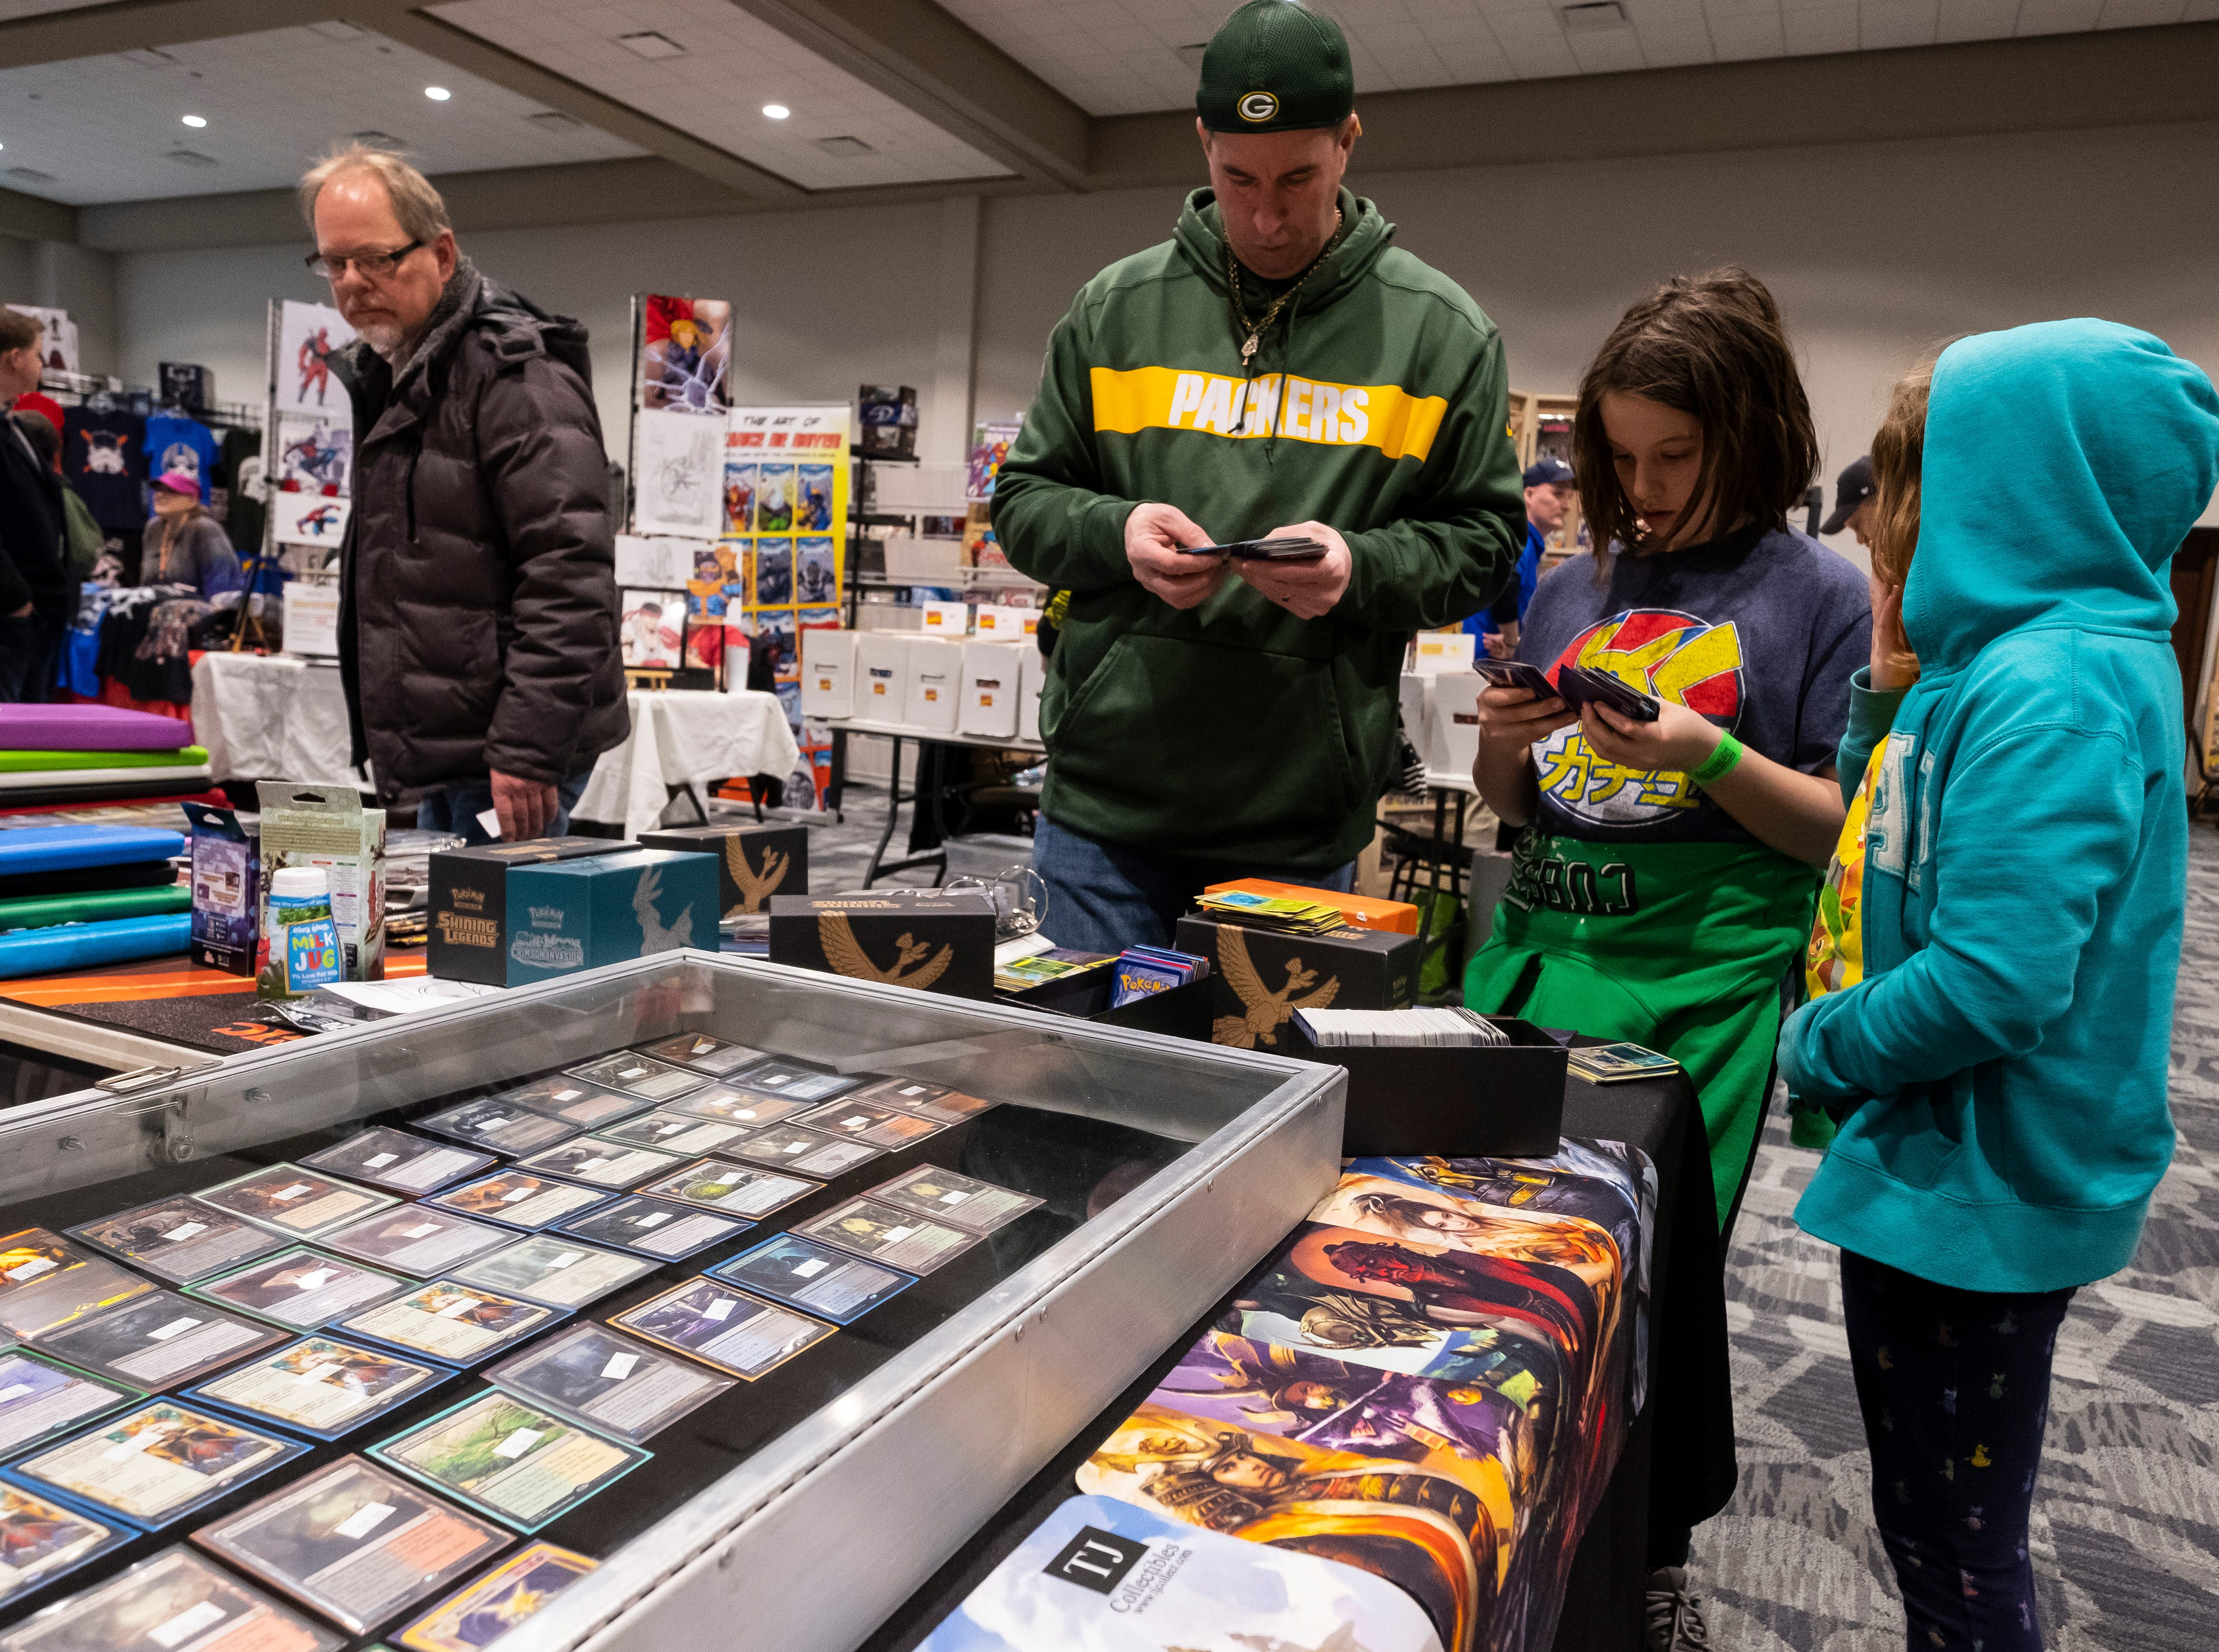 Kevin Meyers browses Pokemon cards with his daughters Keira, 9, center and Kayleigh, 8, right, at one of the vendors during Blue Water International Comic-Con Saturday, March 30, 2019 at the Blue Water Convnetion Center. Several of the vendors working the booth said most of their customers are families looking at different Pokemon and Magic: The Gathering cards.